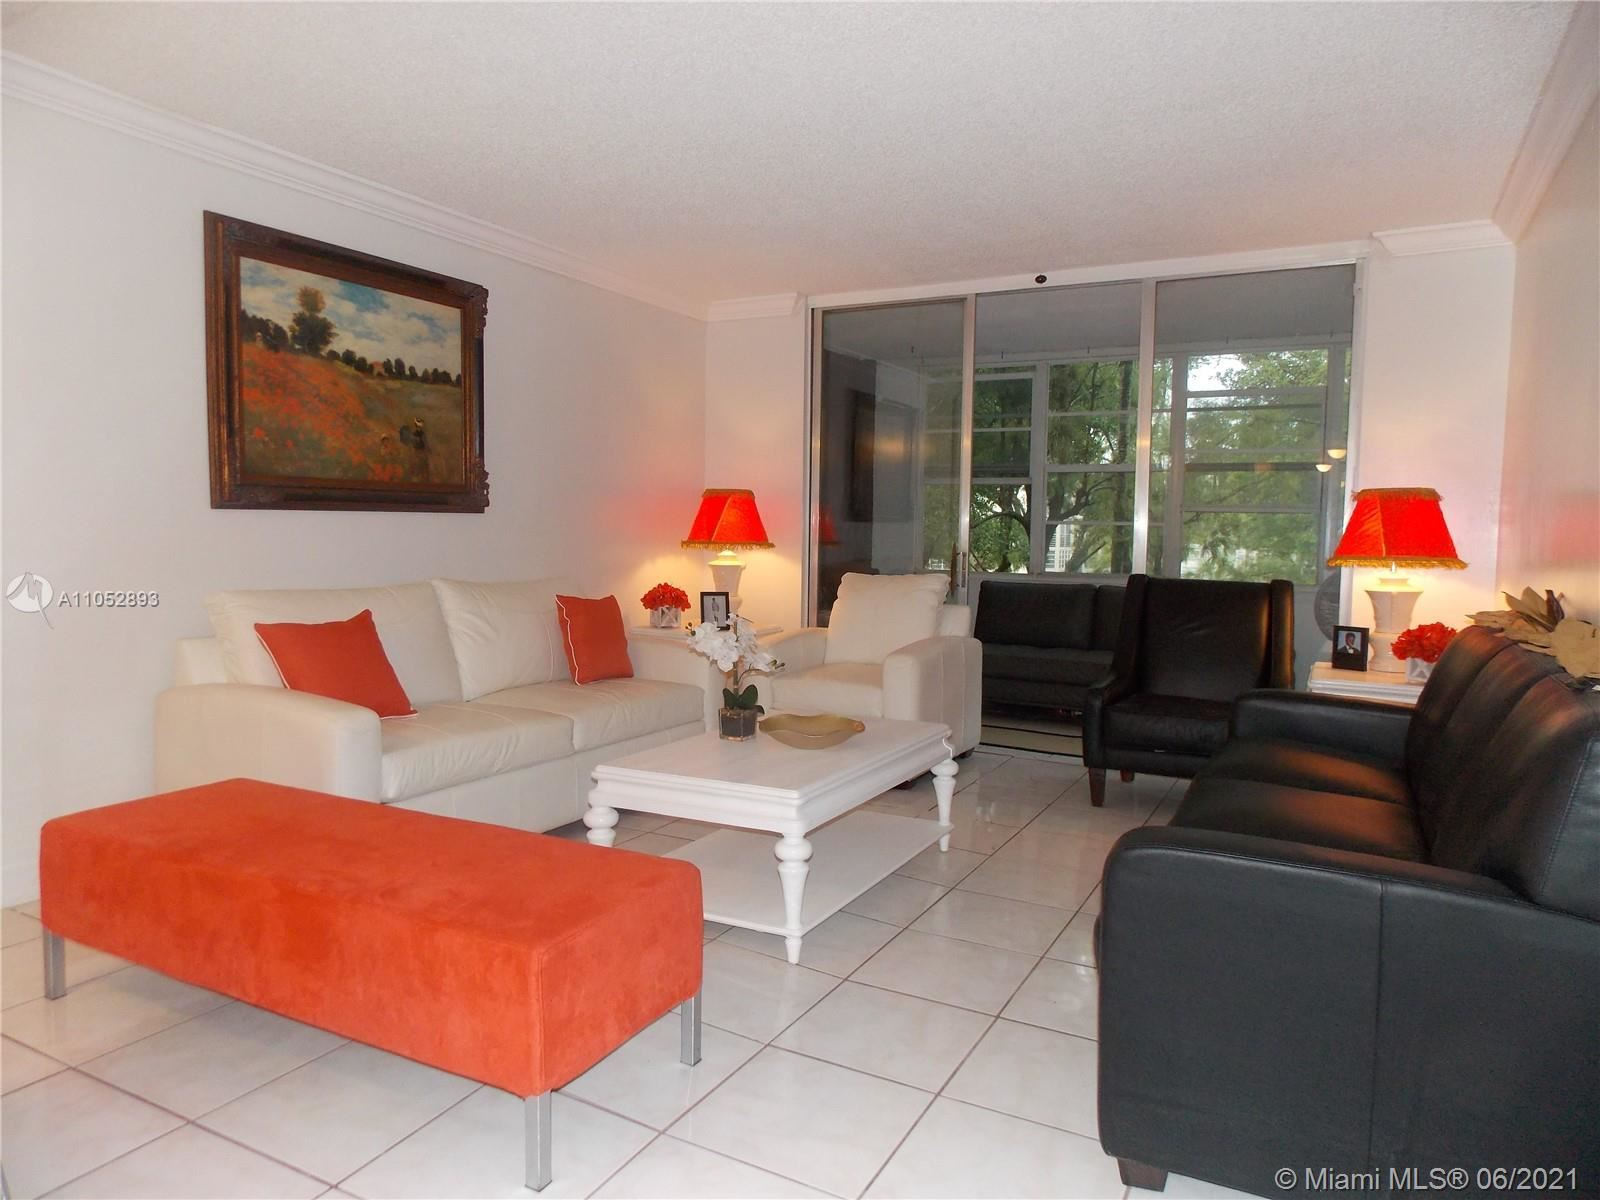 2998 NW 48th Ter #322, Lauderdale Lakes, FL 33313 - #: A11052893